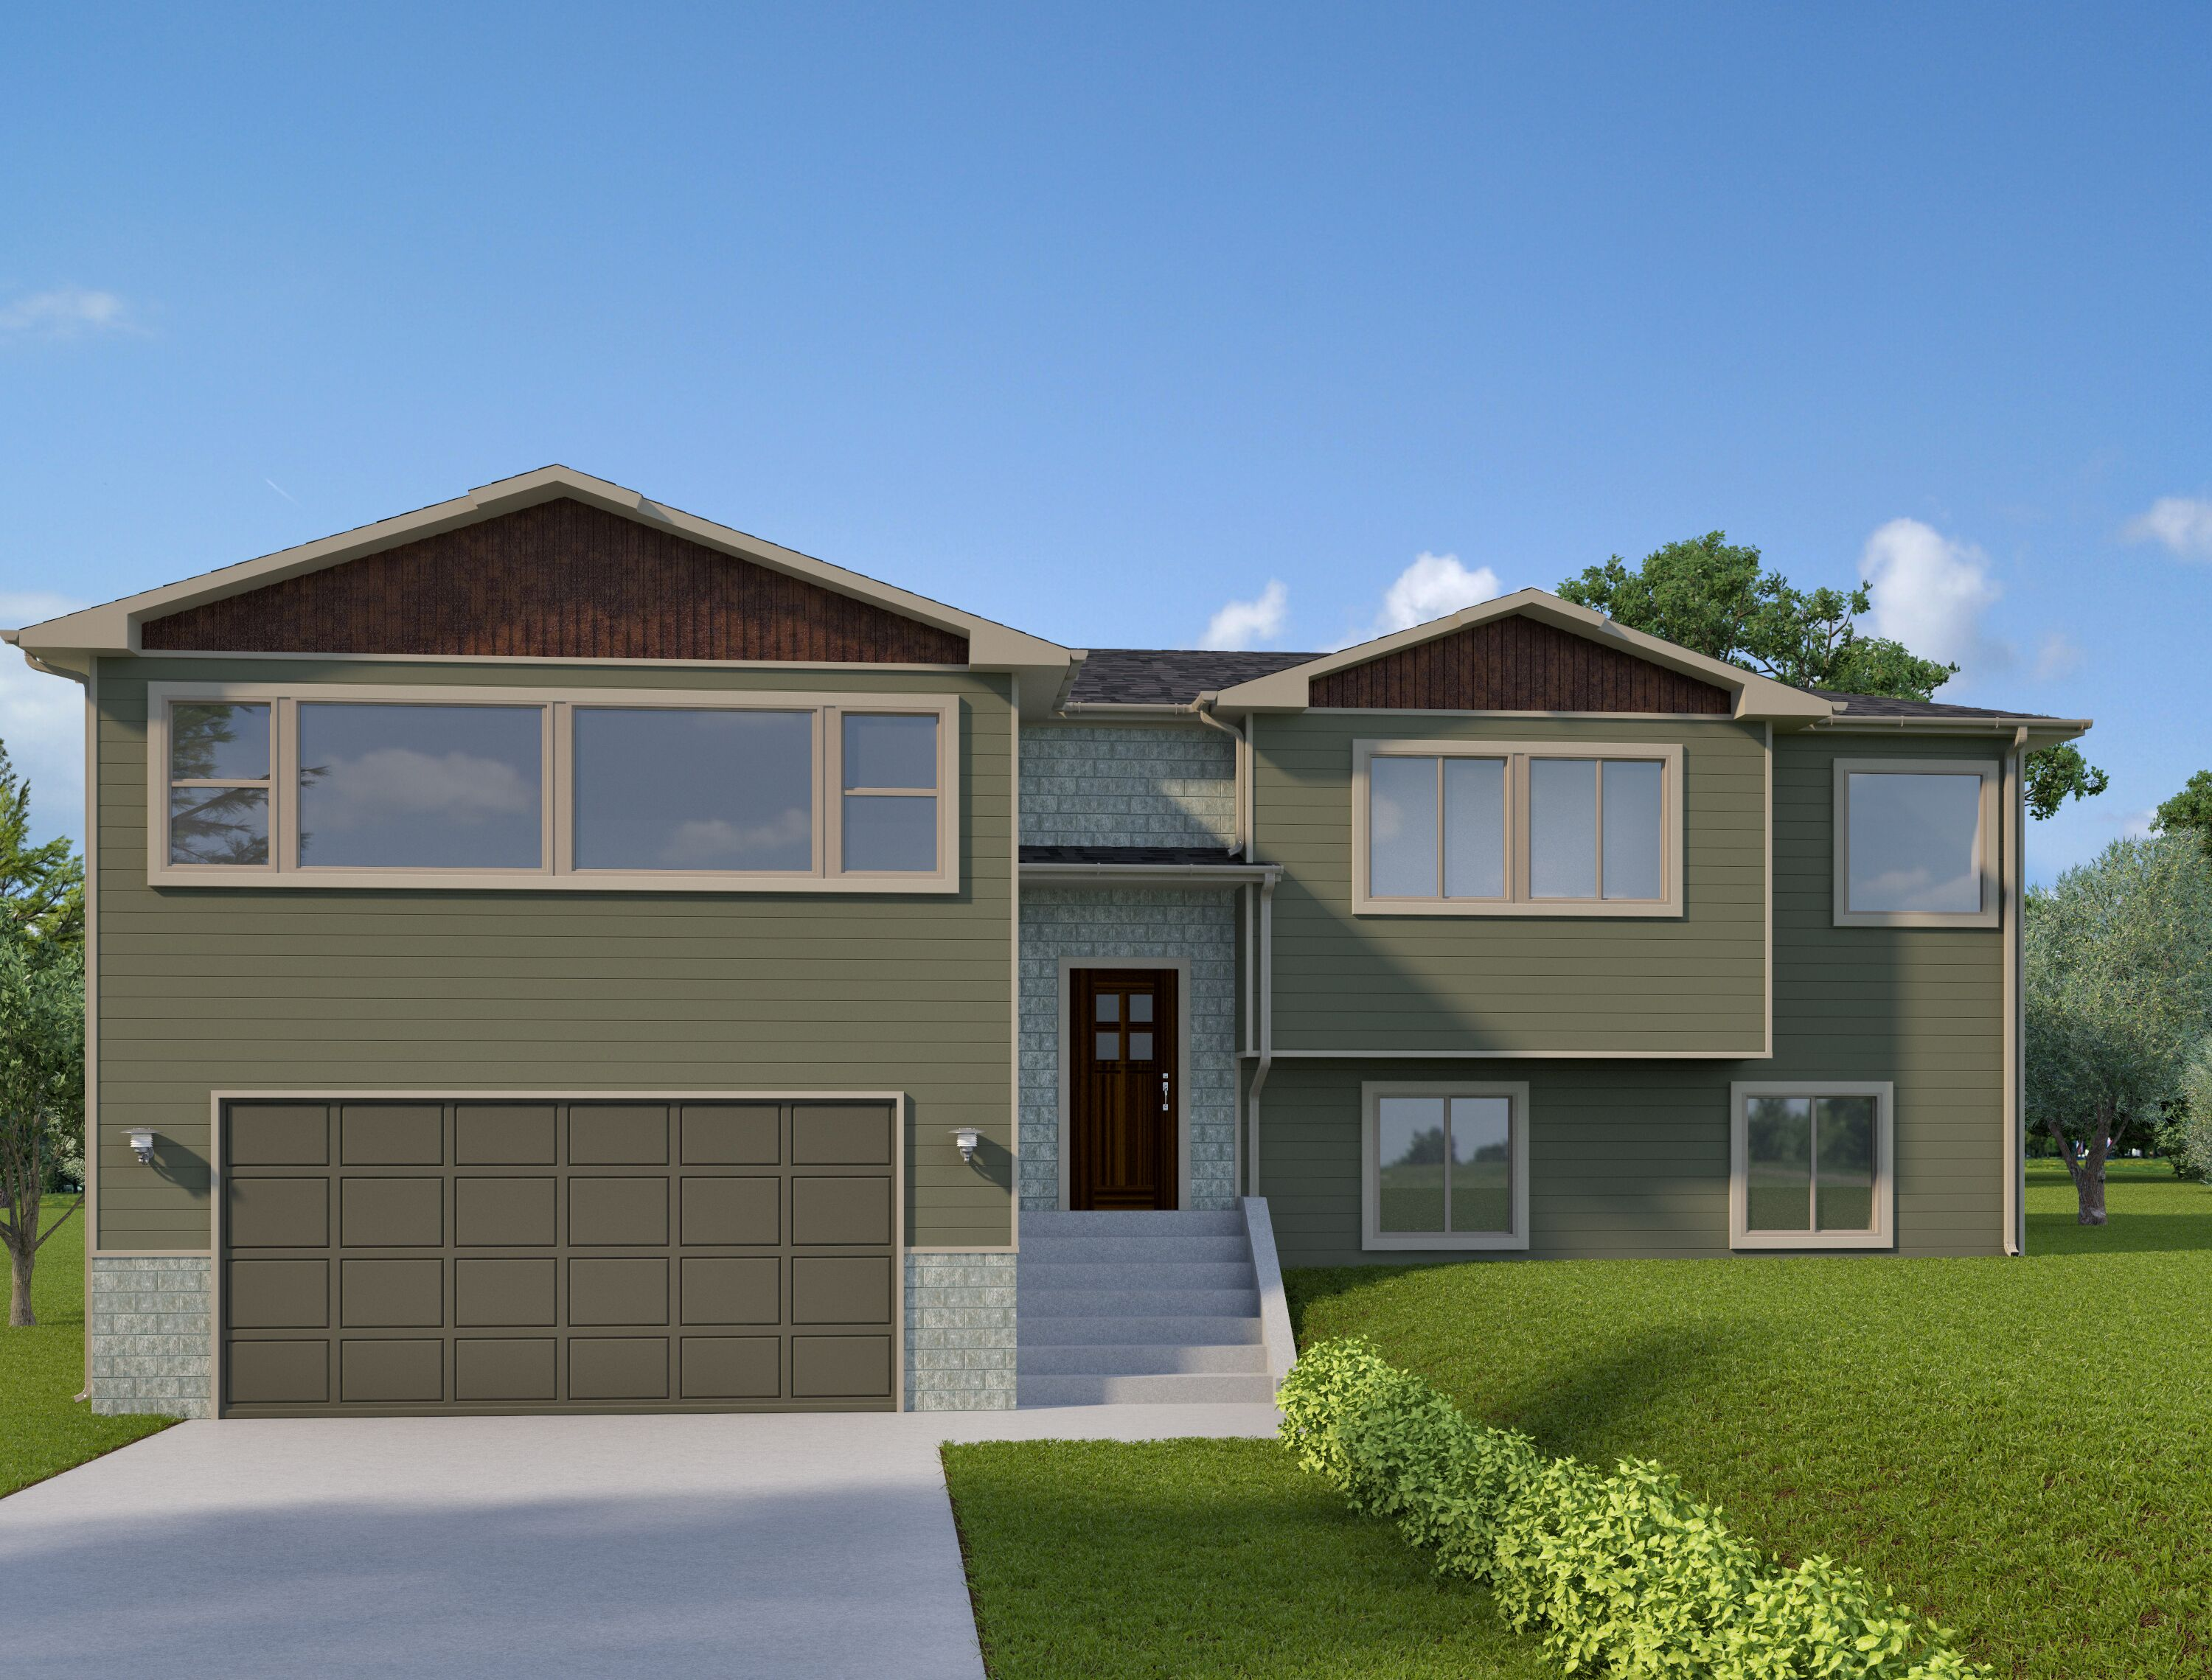 2516 Weeping Willow Court, Sheridan, Wyoming 82801, 4 Bedrooms Bedrooms, ,Home - Aspen Grove,SOLD,Lot 46,Weeping Willow,1016